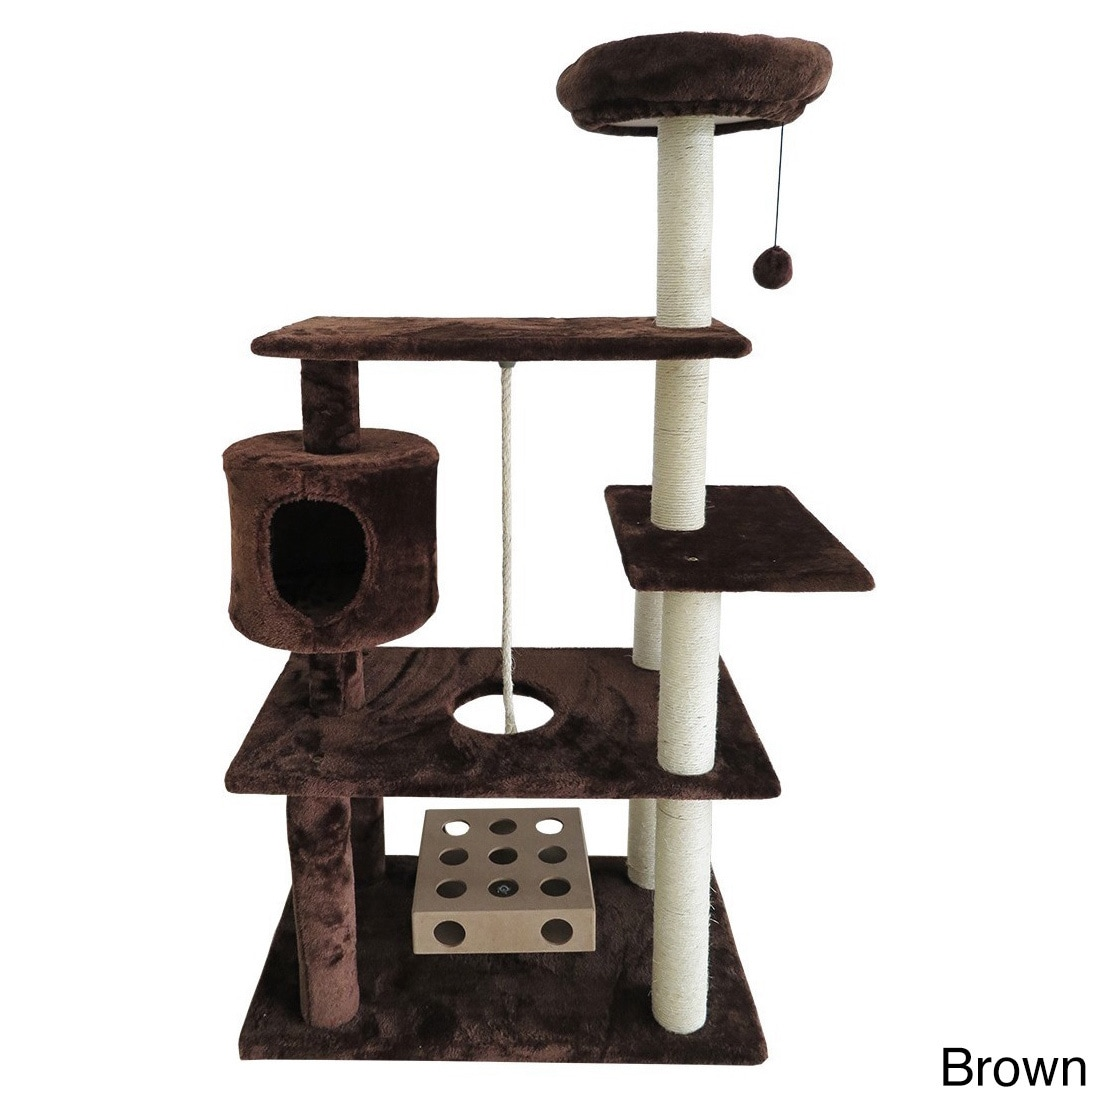 McKlein Deluxe Playground Cat Tree House with Cat-IQ Busy...